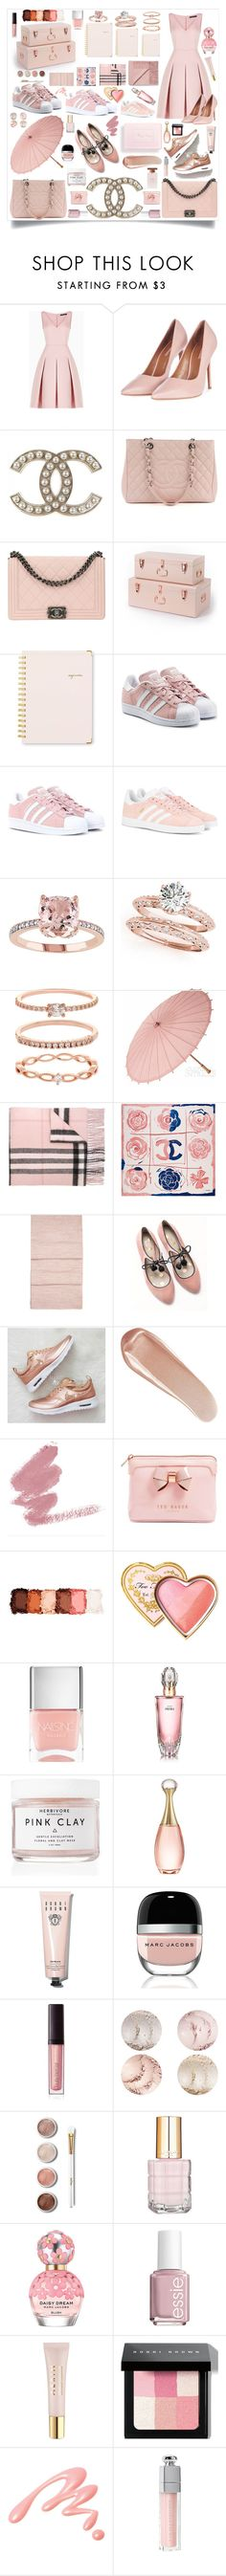 """""""Pastel Pink"""" by bright-designs ❤ liked on Polyvore featuring BCBGMAXAZRIA, Topshop, Chanel, Sugar Paper, adidas Originals, Accessorize, Cultural Intrigue, Burberry, Hobbs and Boden"""